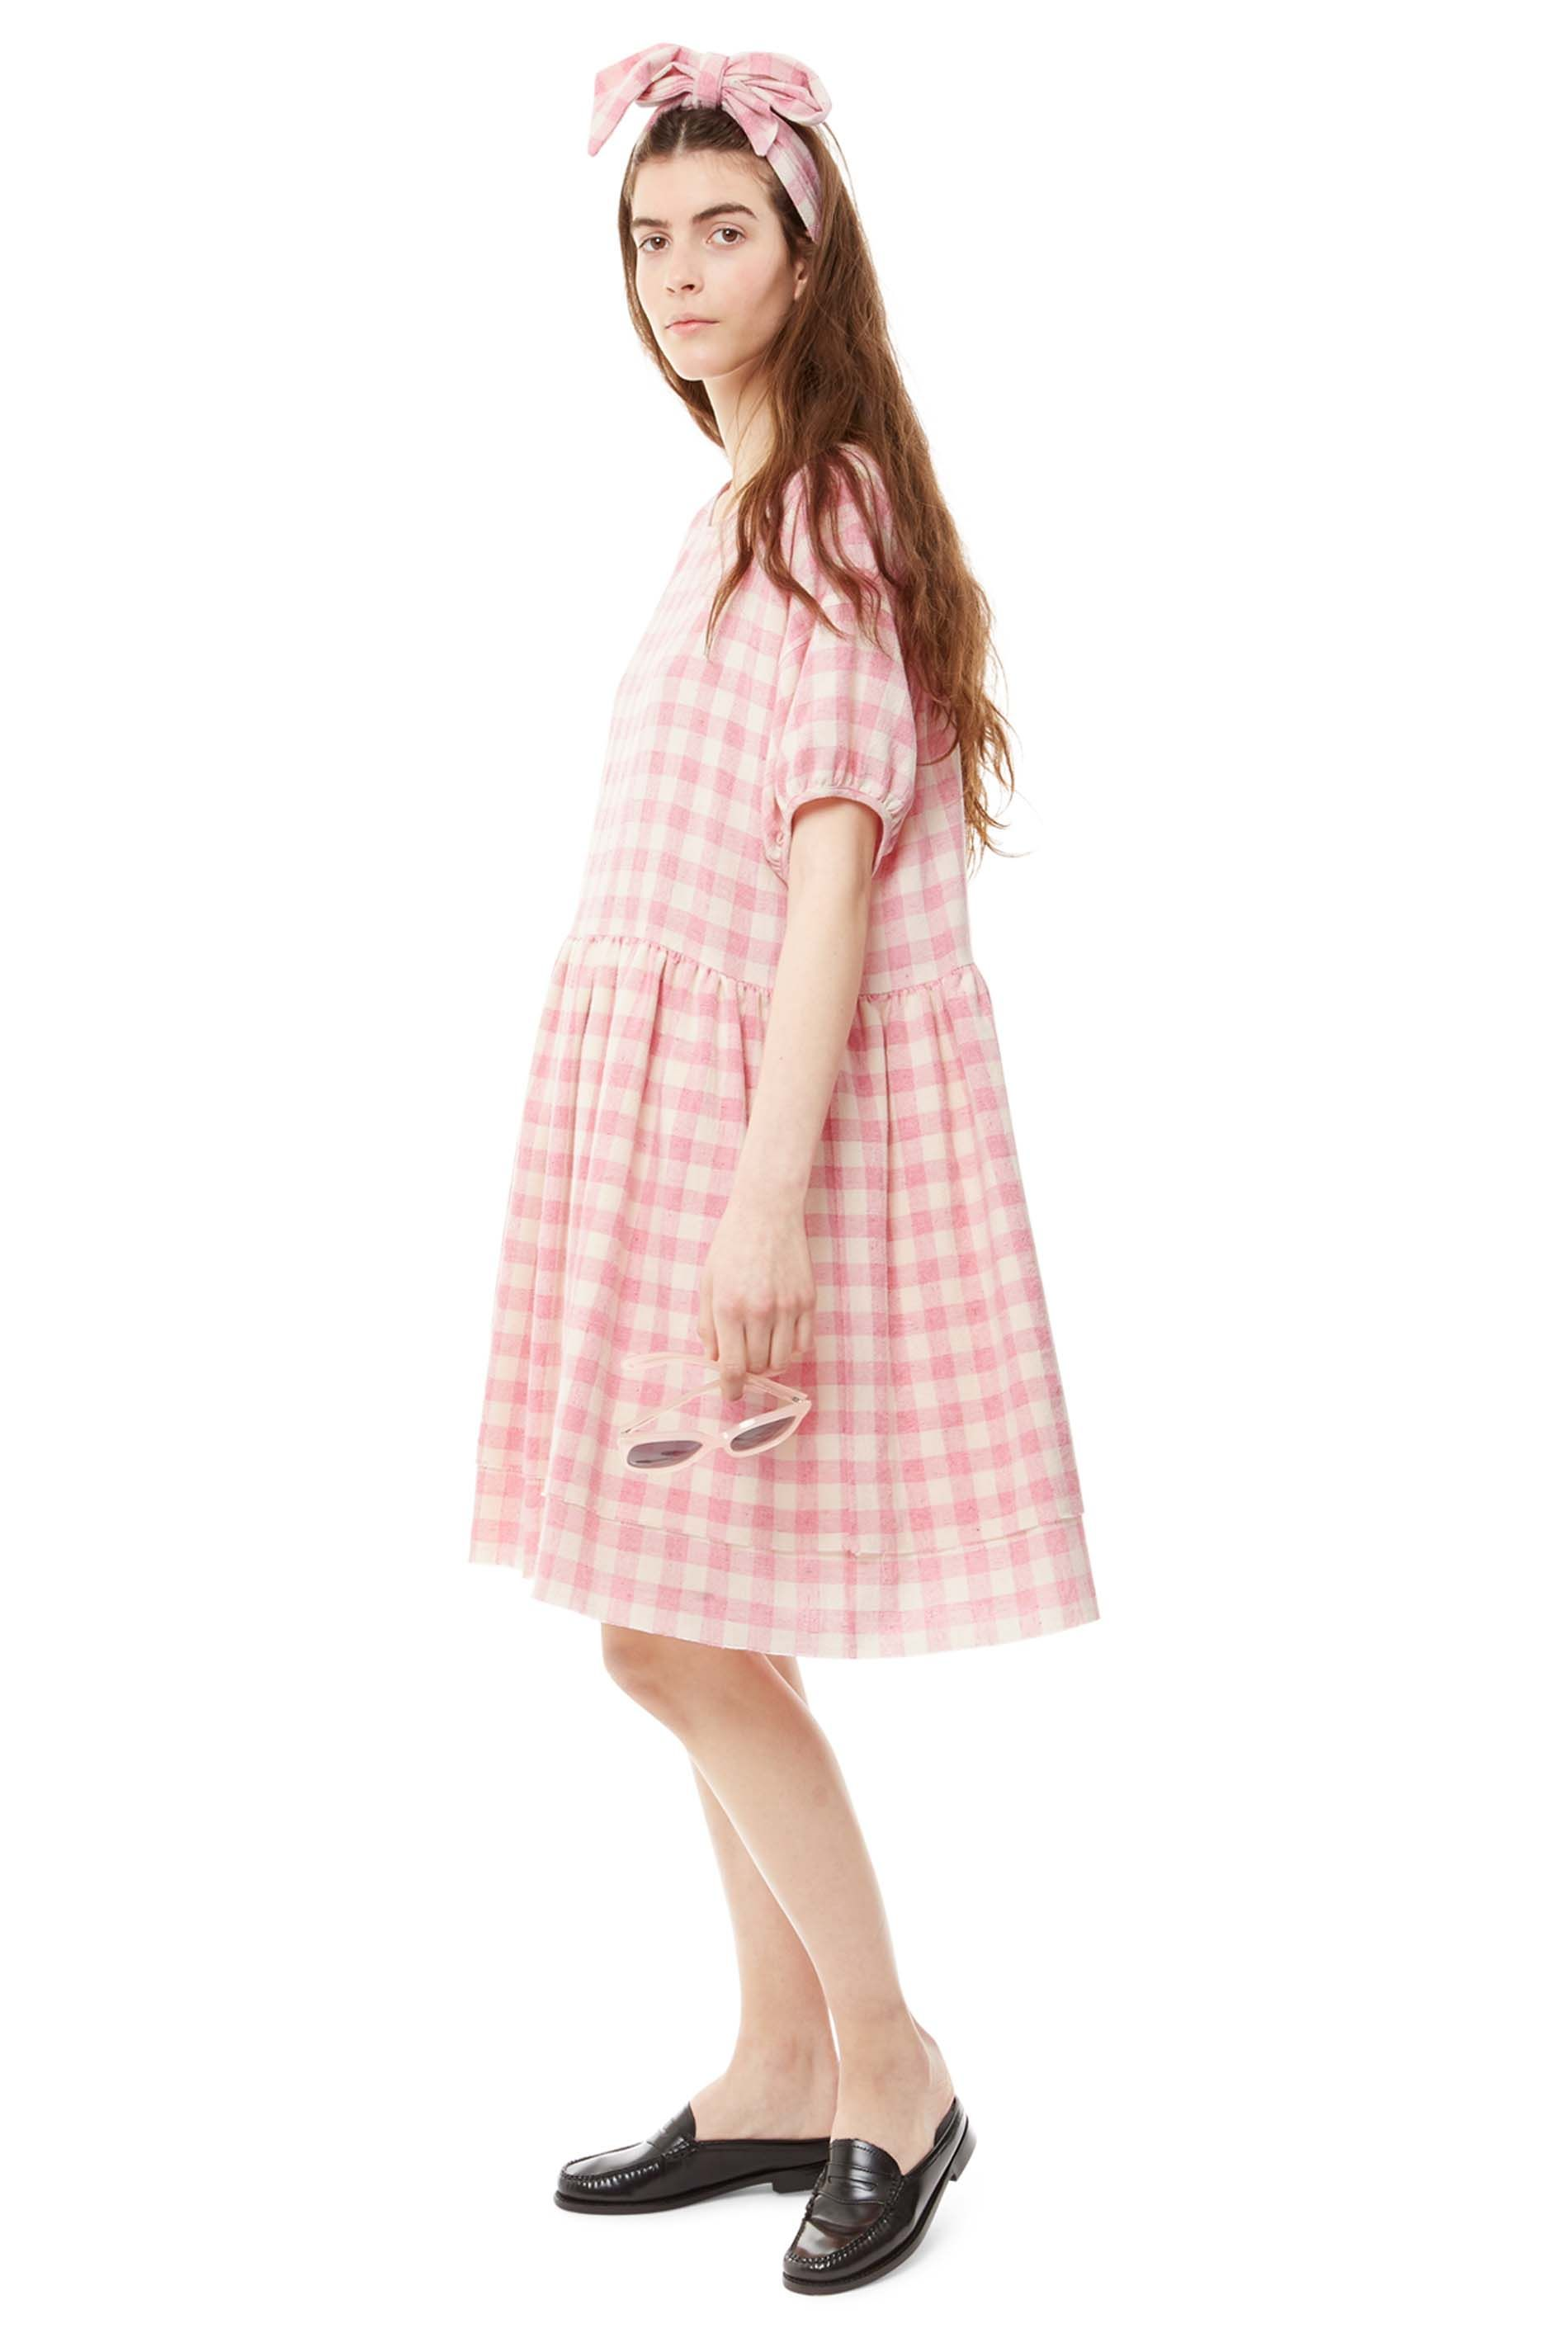 Just Skirts And Dresses Inspiration: Dottie Layered Skirt Dress In Pink Check